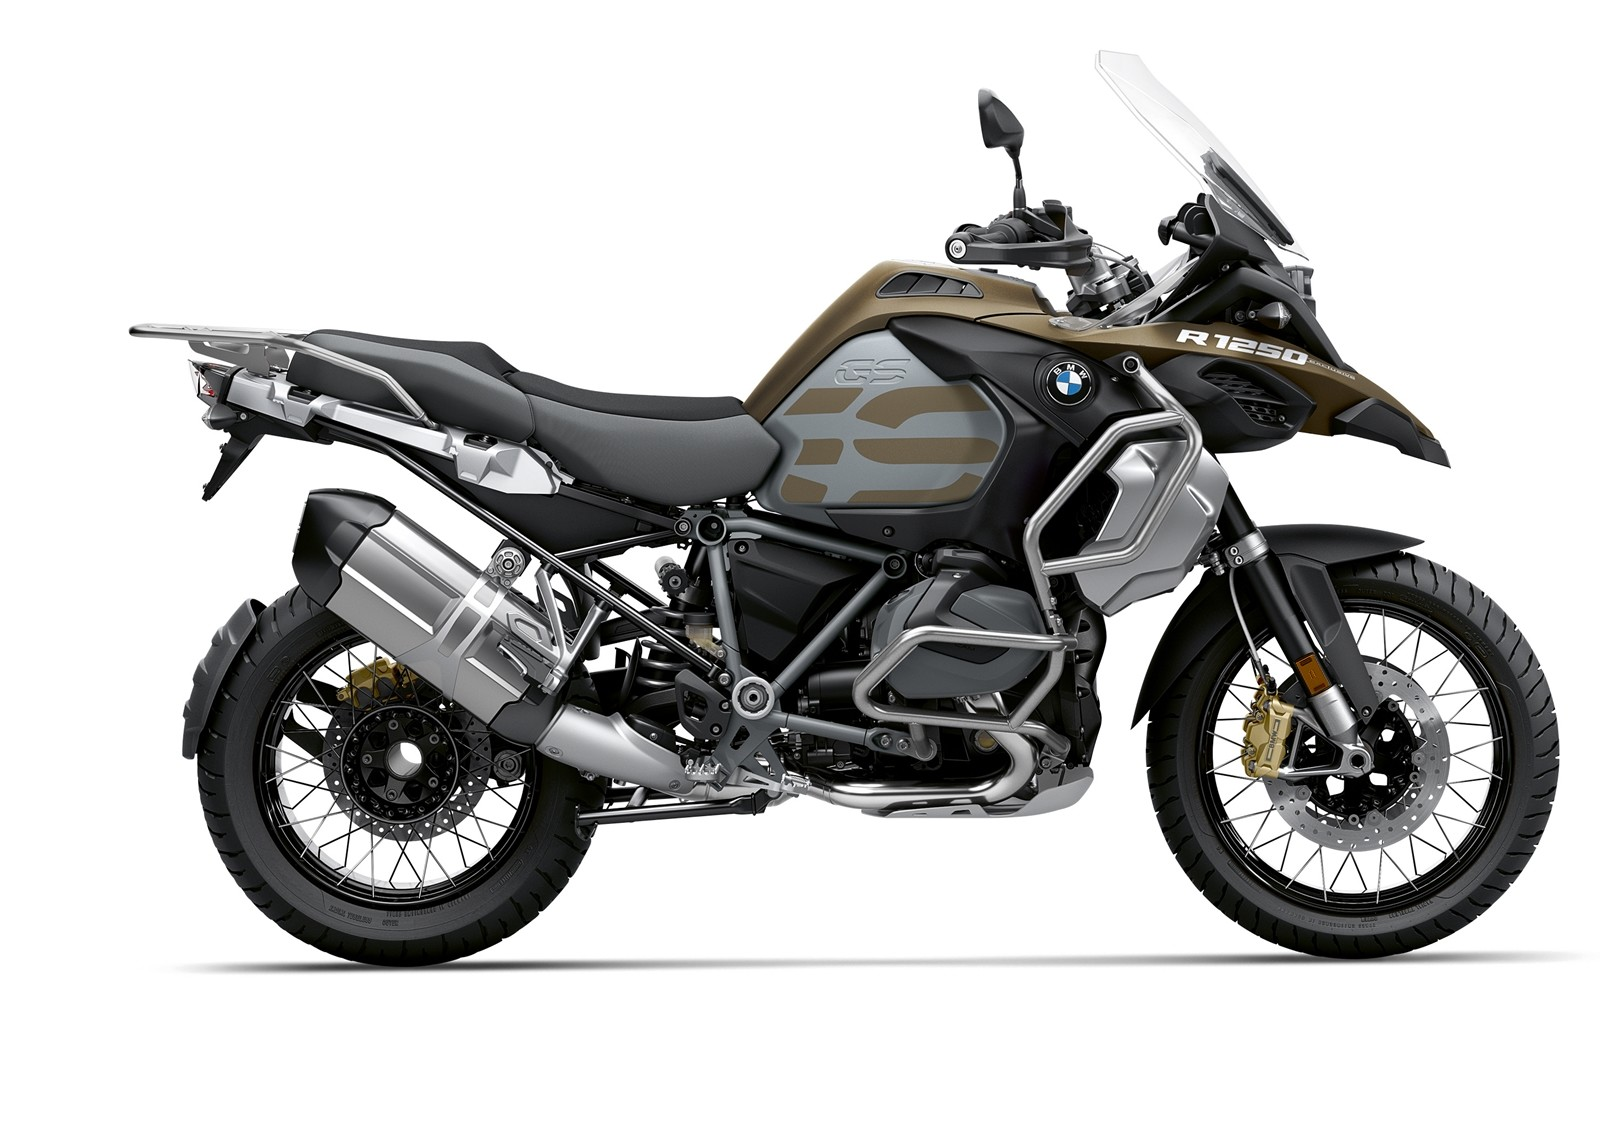 Foto de BMW R 1250 GS Adventure 2019 (23/37)